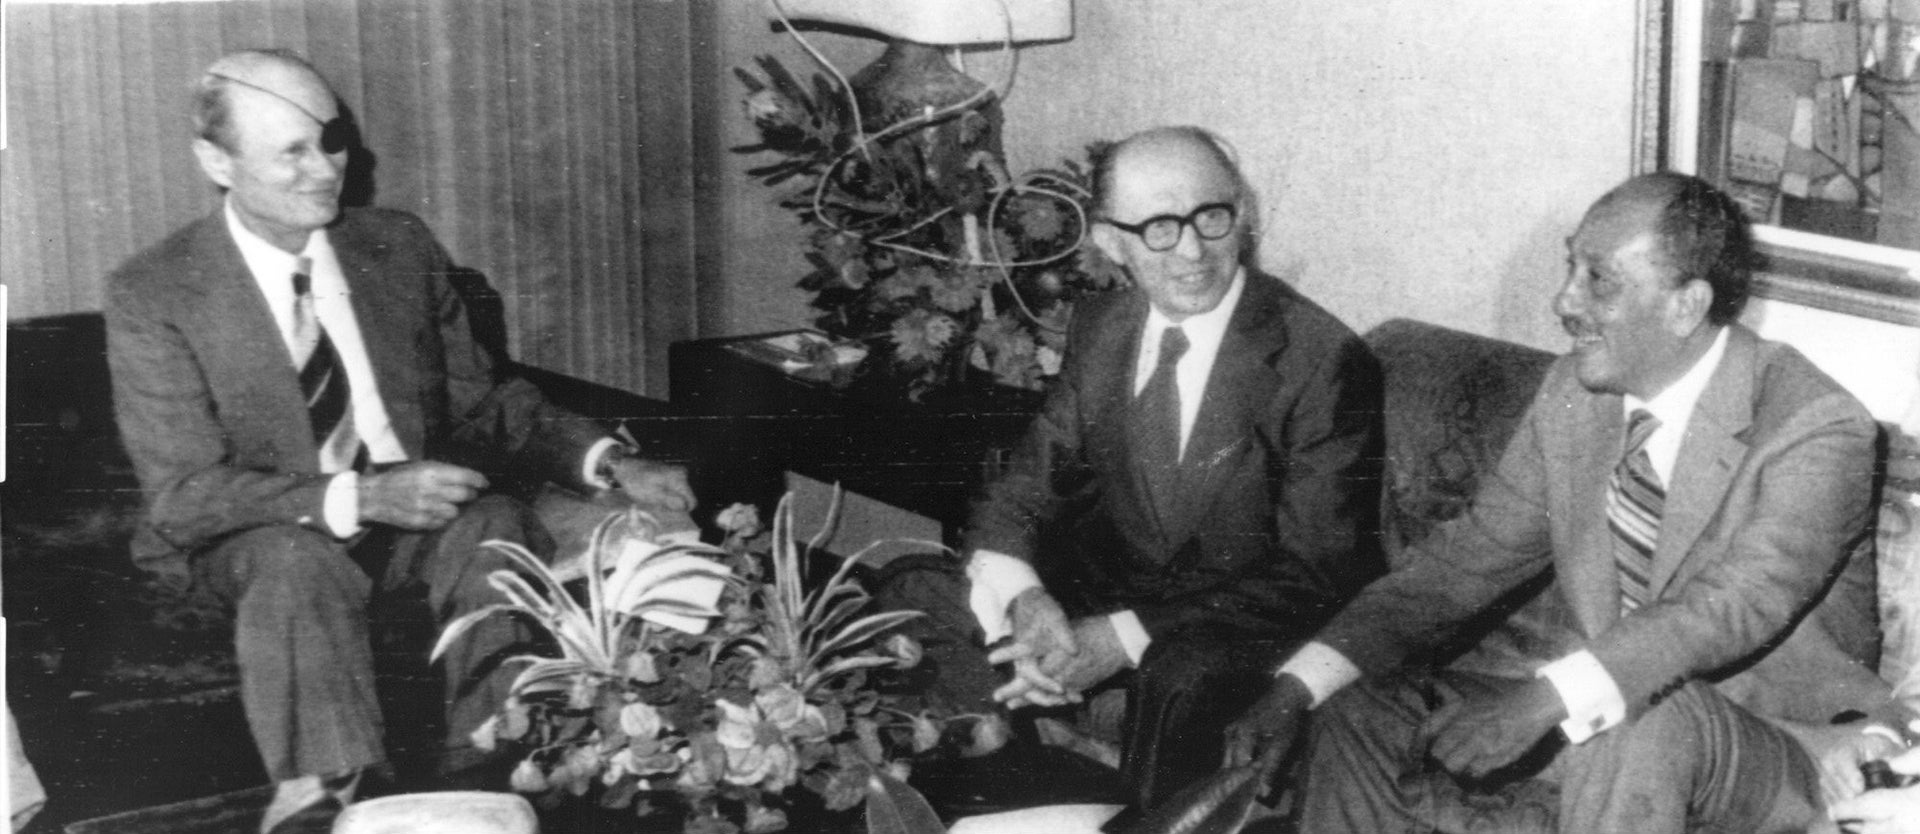 Foreign Minister Moshe Dayan, Prime minister Menahem Begin and Egyptian President Anwar As Sadat (left to right) meet for some talks prior to lunch in the Jerusalem King David Hotel on November 20, 1977, where the Egyptian leader stays during his two-day-visit to Israel.